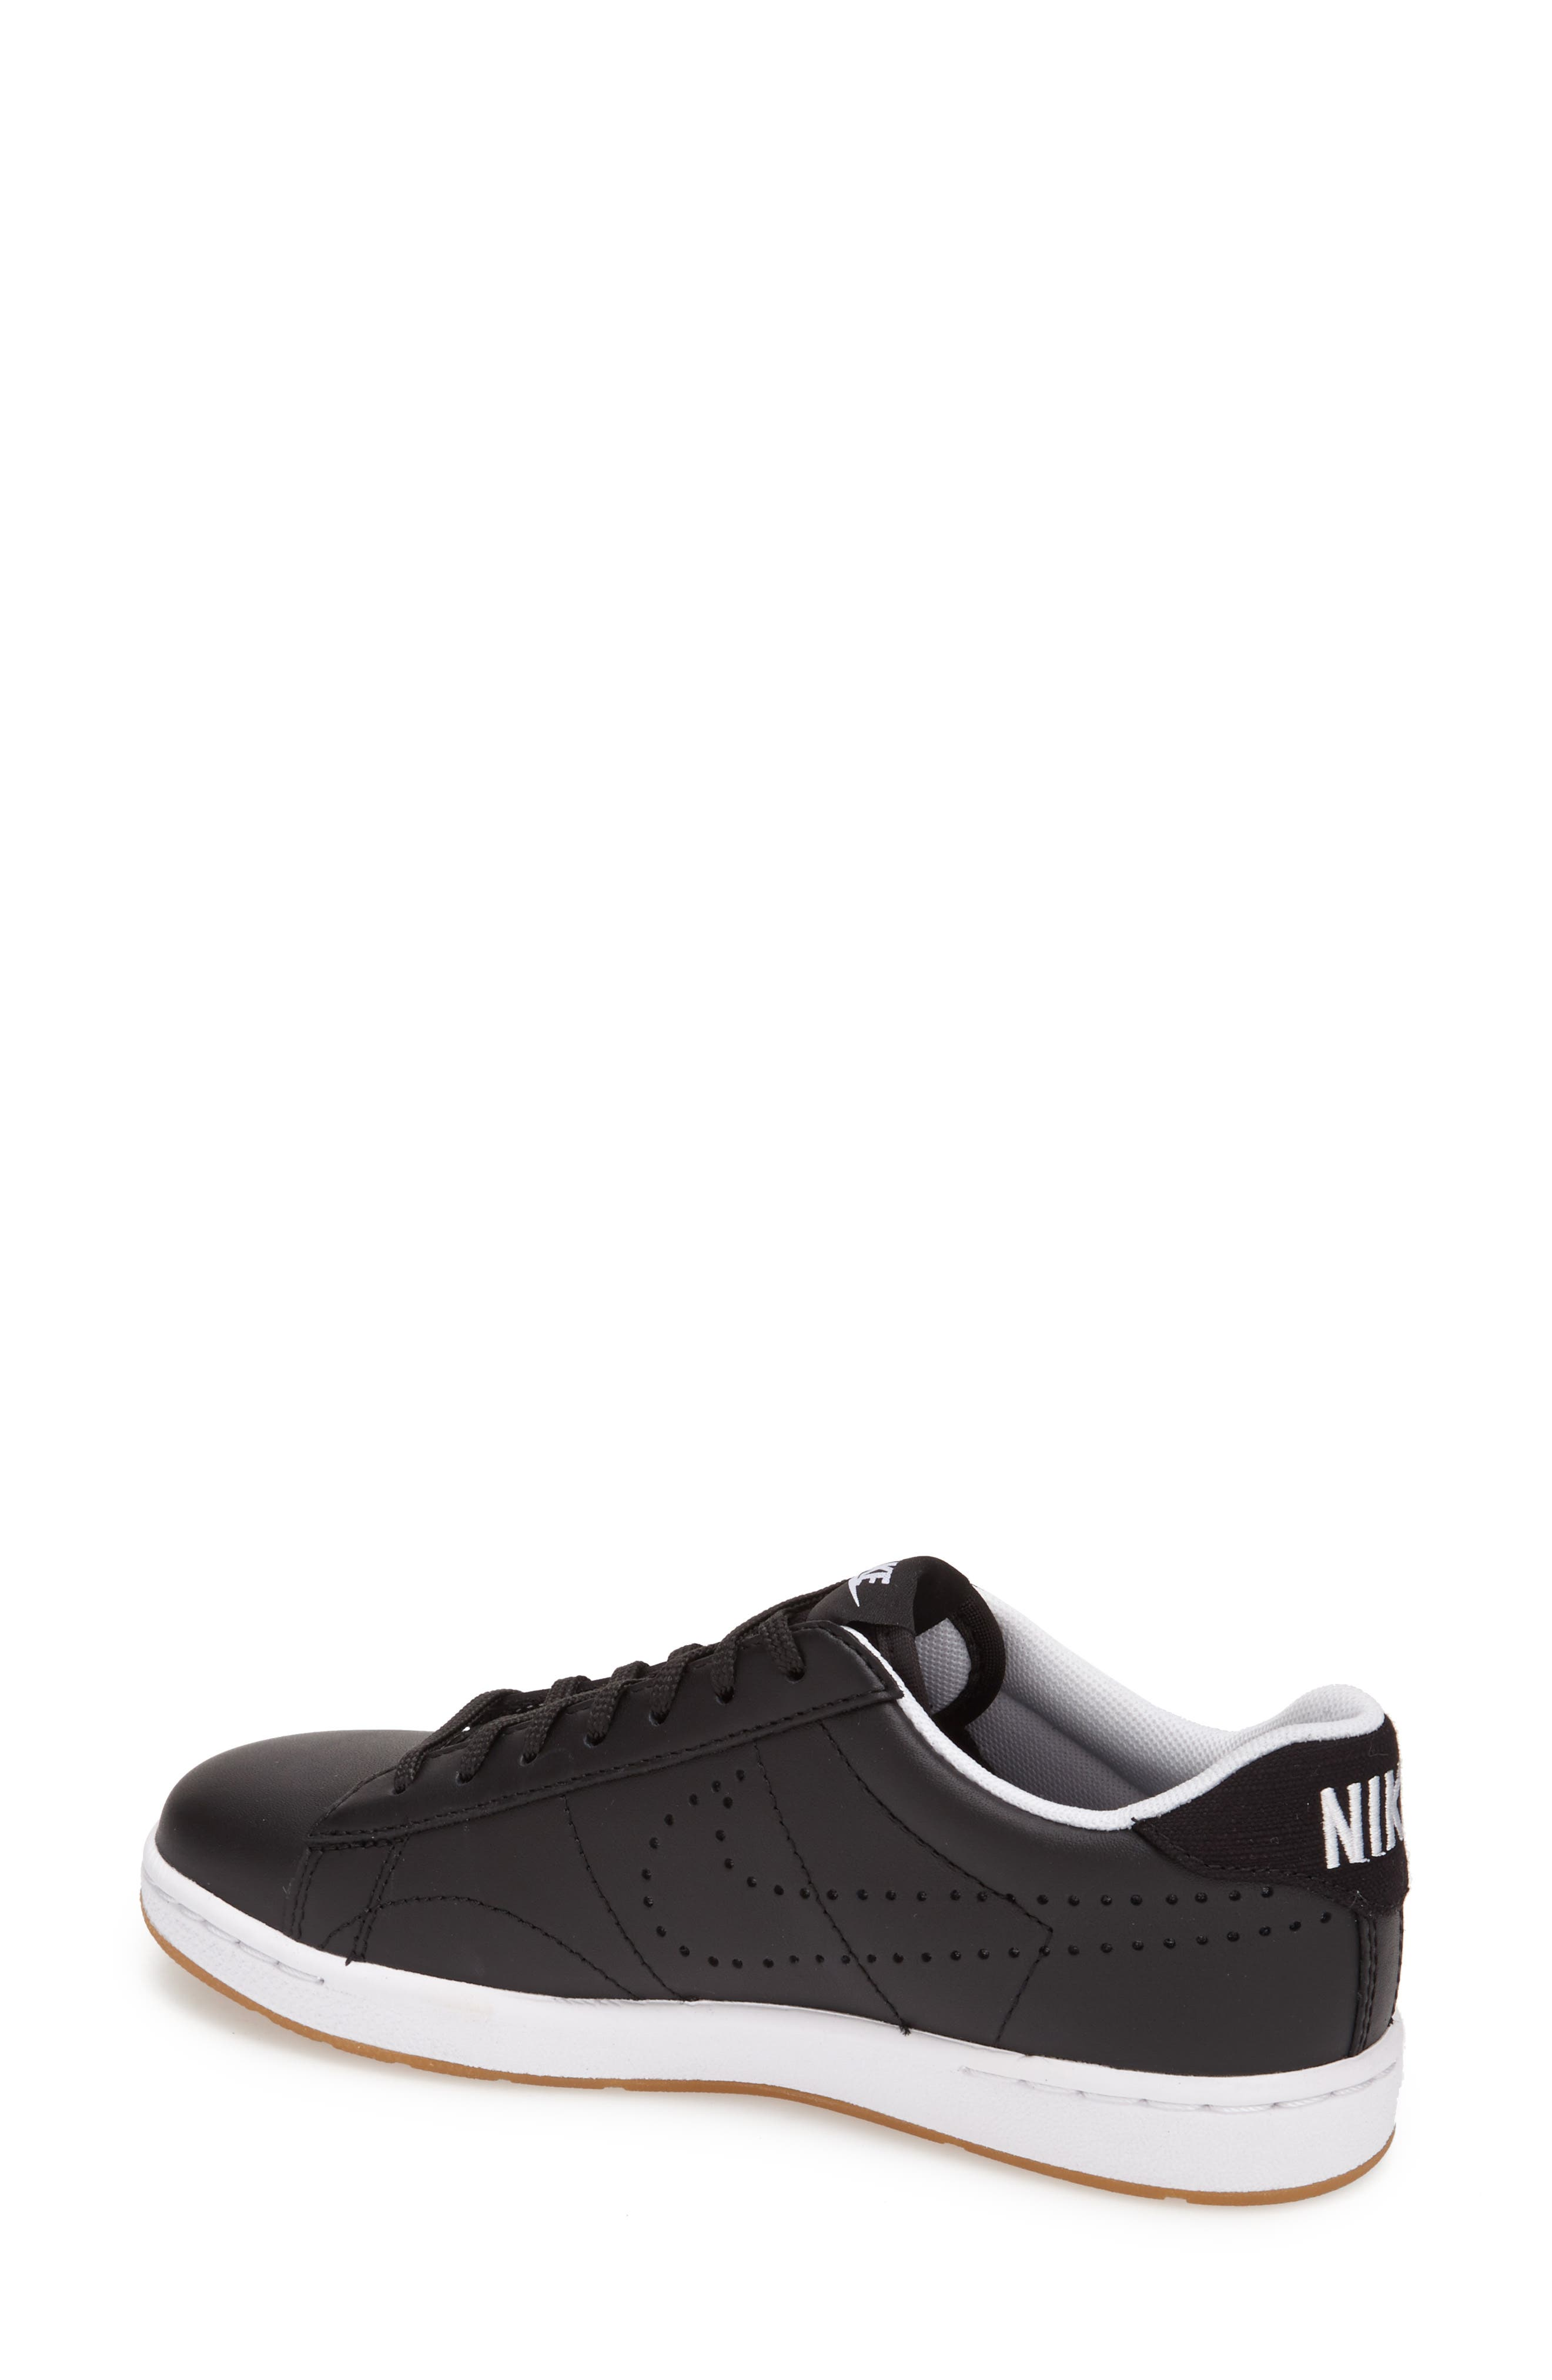 'Classic Ultra' Leather Sneaker,                             Alternate thumbnail 4, color,                             001